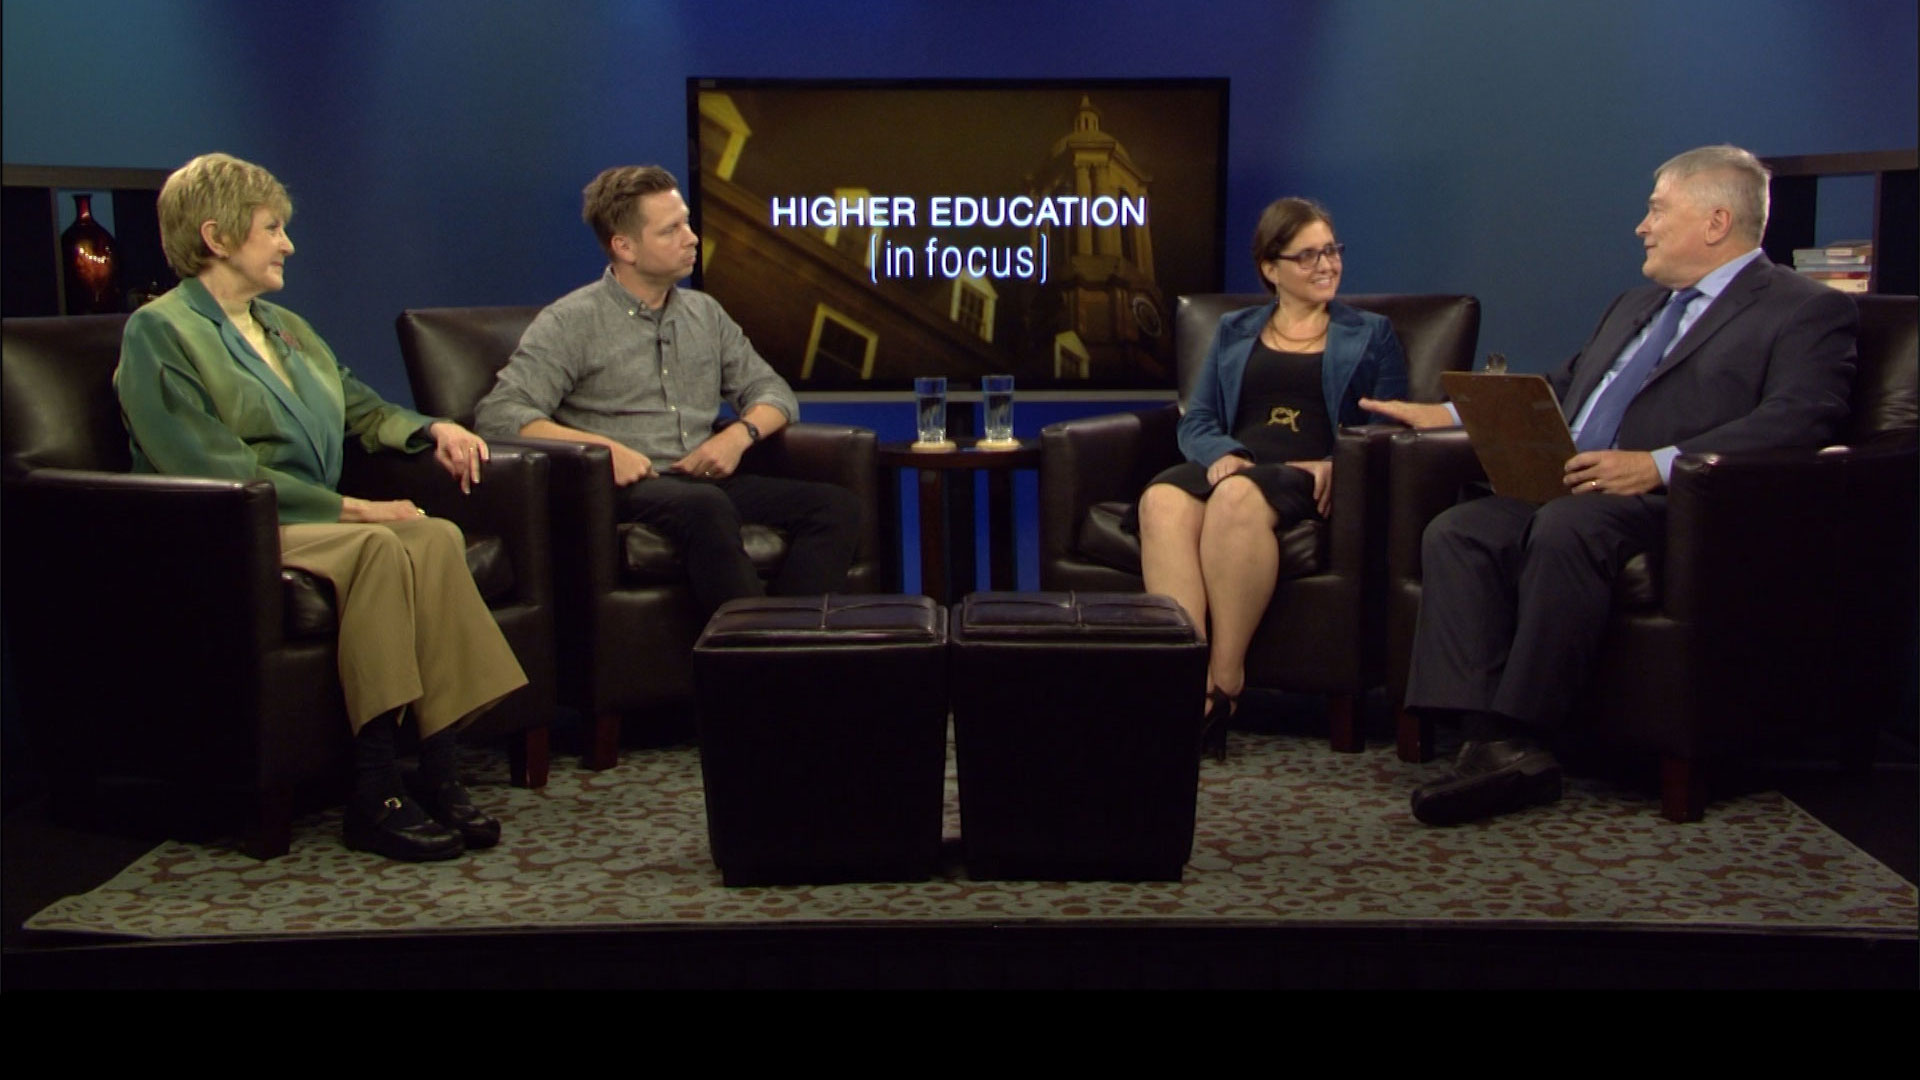 Penn State President Eric Barron with guests on the set of Higher Education in Focus